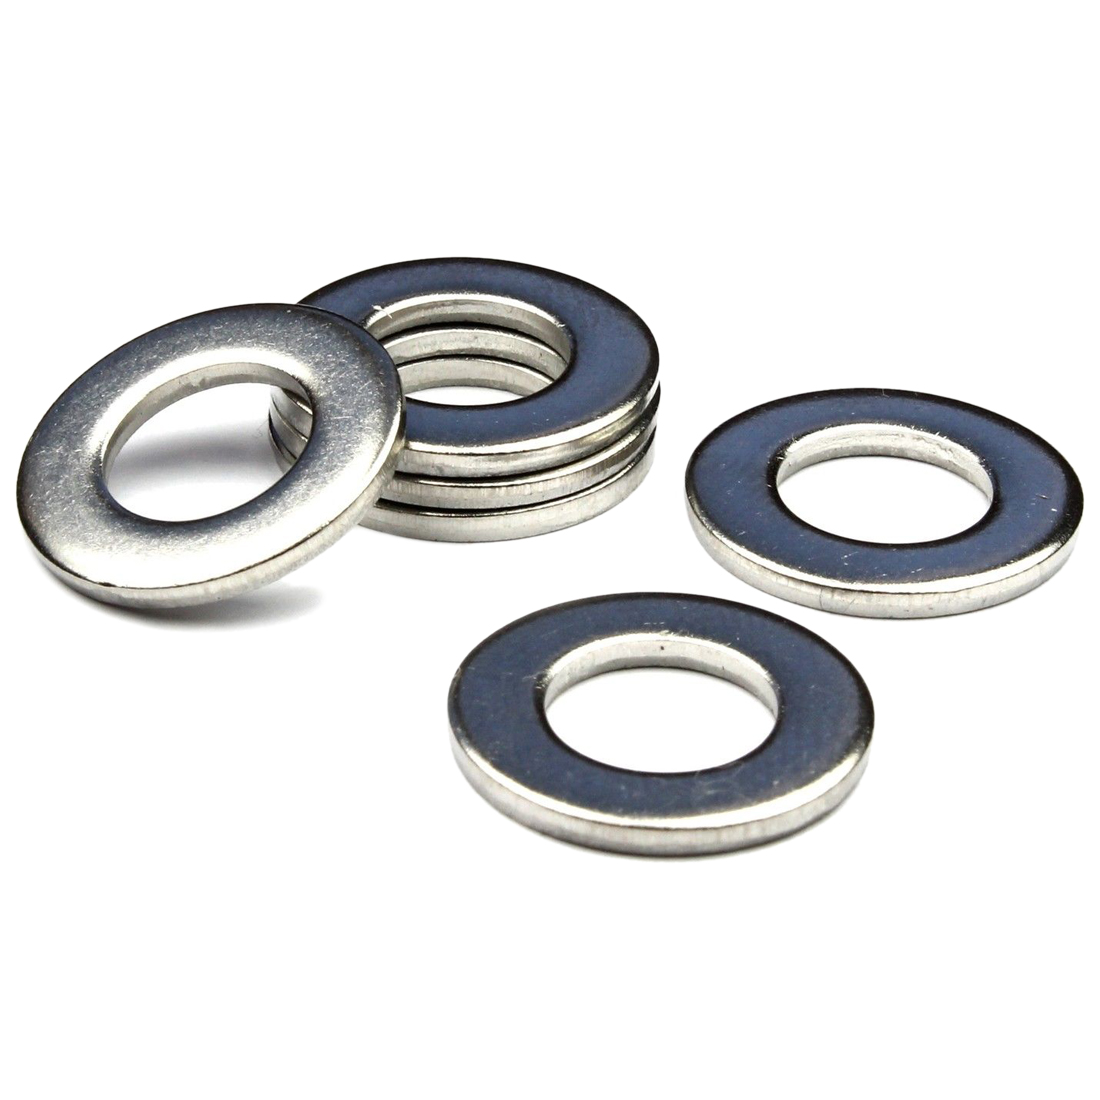 Us 0 56 24 Off Stainless Steel Form A Flat Washers To Fit Metric Bolts Screws M2 2 2mm 5mm 0 3mm 100pcs In Washers From Home Improvement On